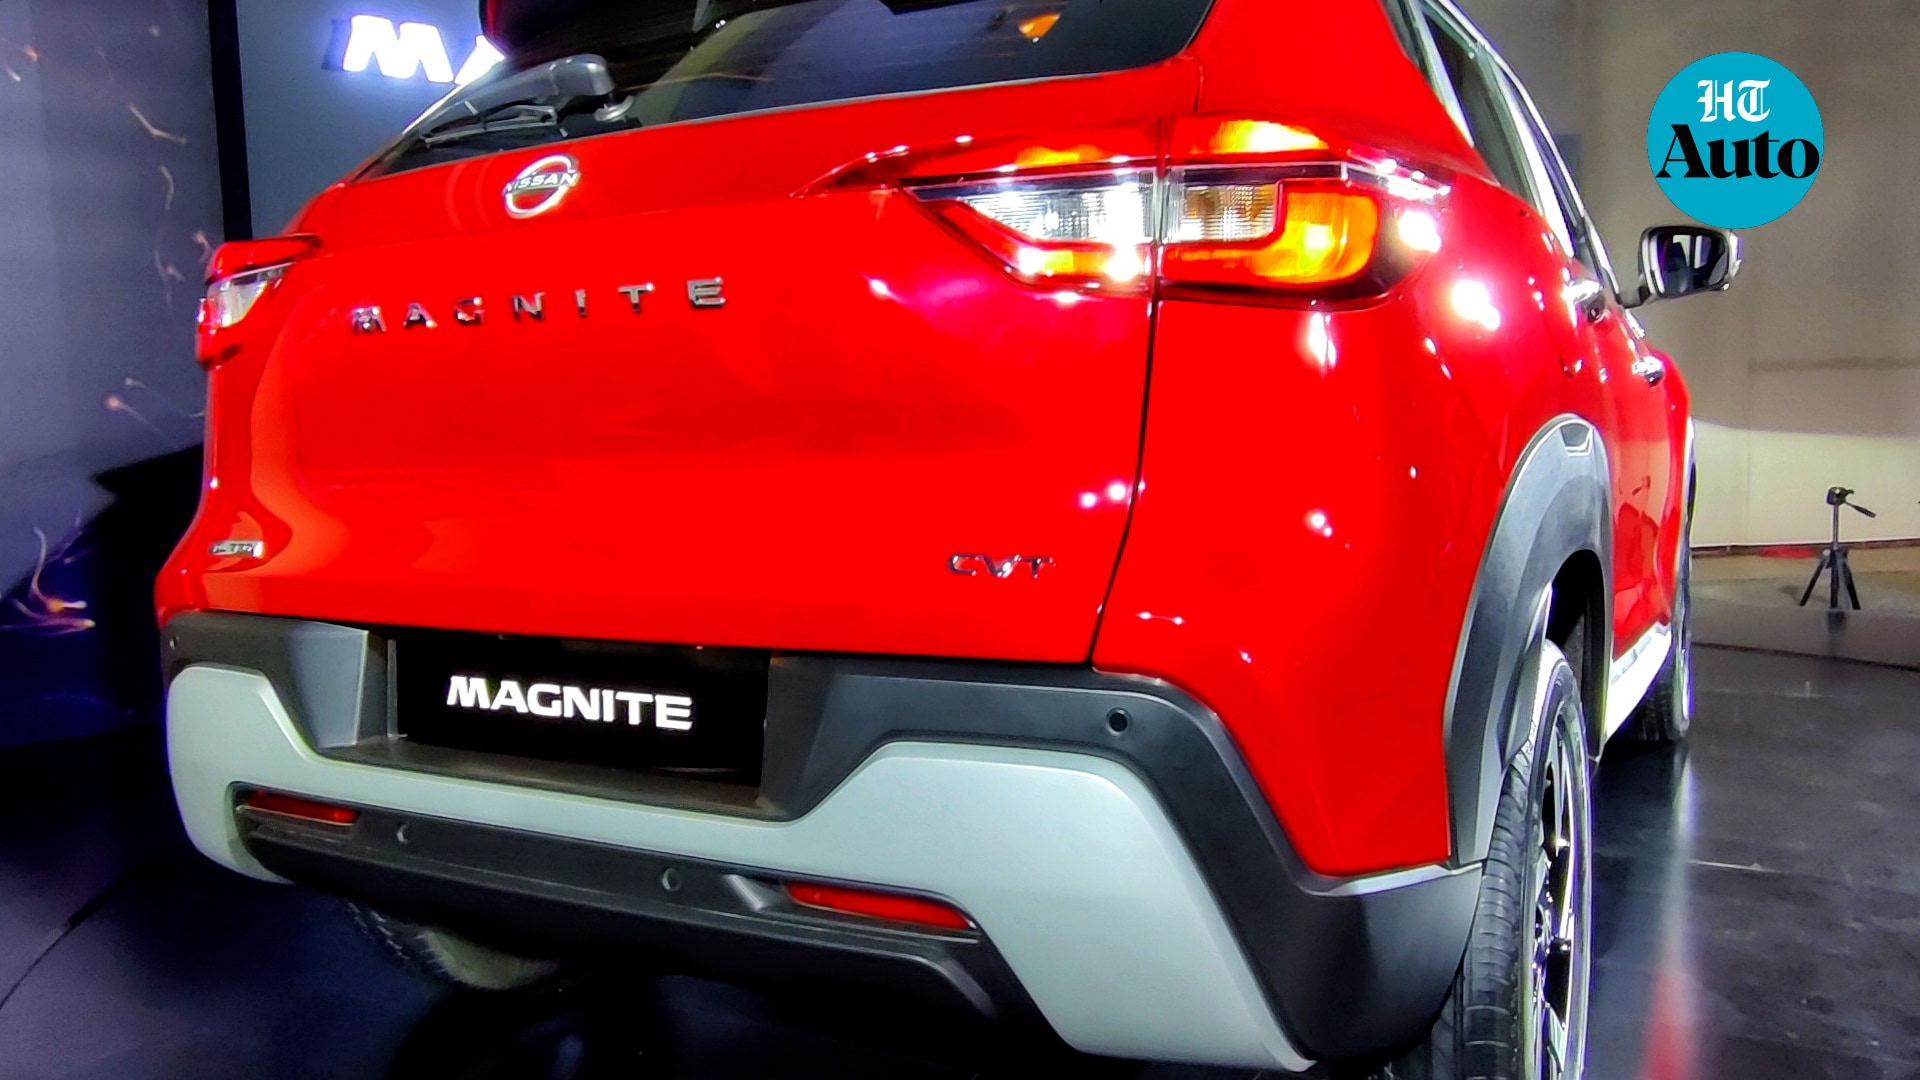 The rear profile of Magnite benefits from sleek LED tail lights and the 'Magnite' badge just under the rear wiper. The silver skid plate makes a comeback here and there is a brake light mounted on the rear spoiler as well. (HT Auto/Sabyasachi Dasgupta)